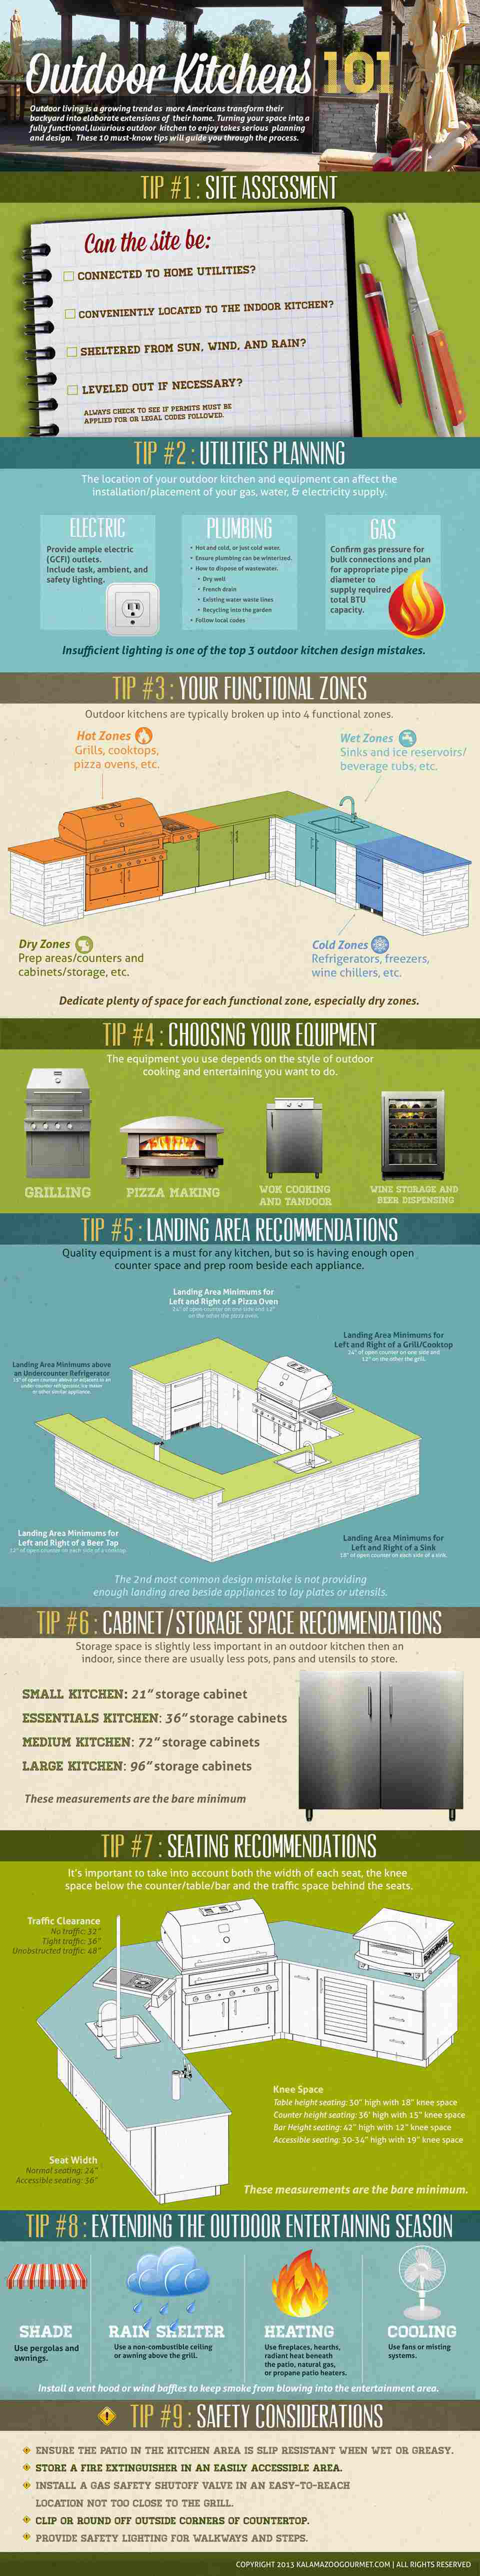 Nine tips for building an outdoor kitchen